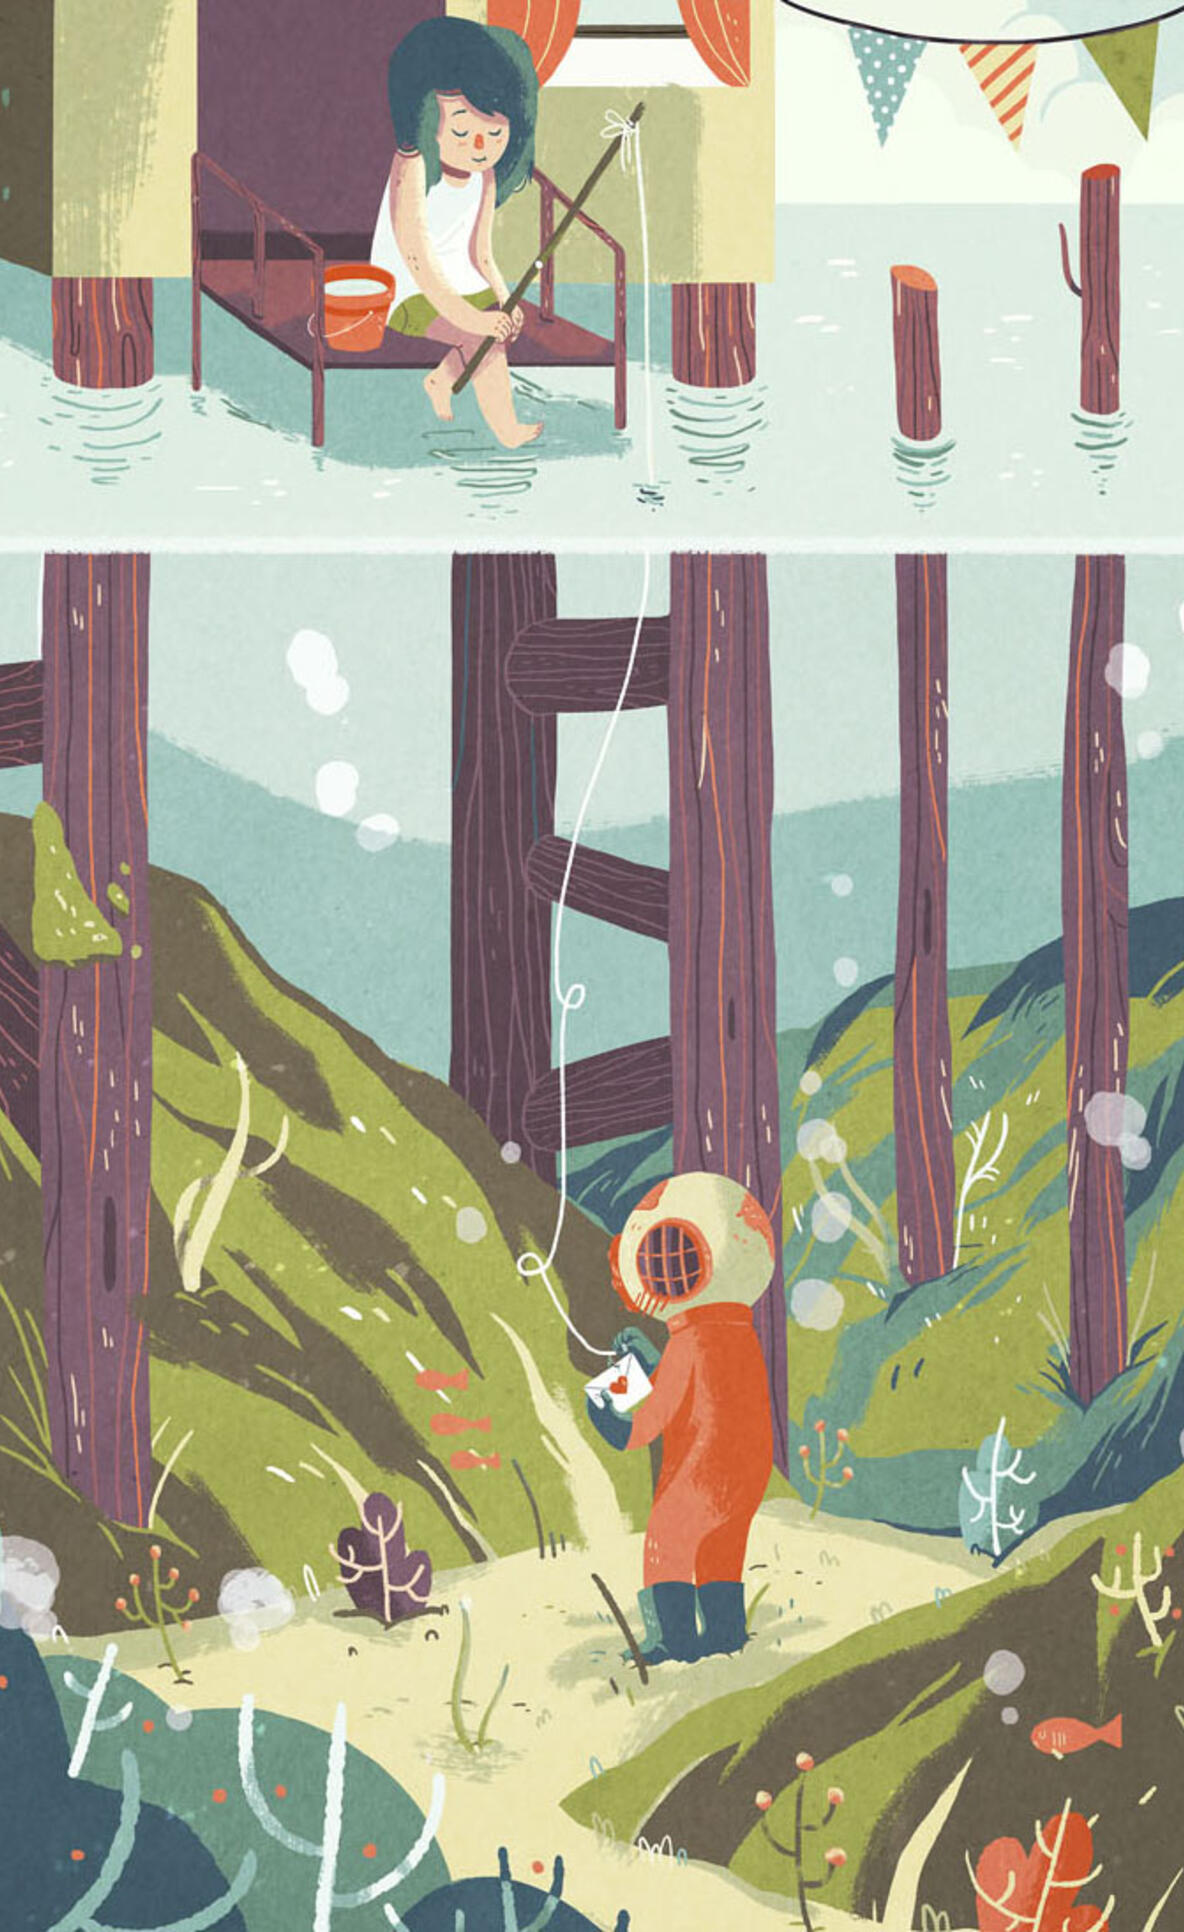 An illustration of a love letter exchanged between a diver and a fisher person.  ; Ann Macarayan